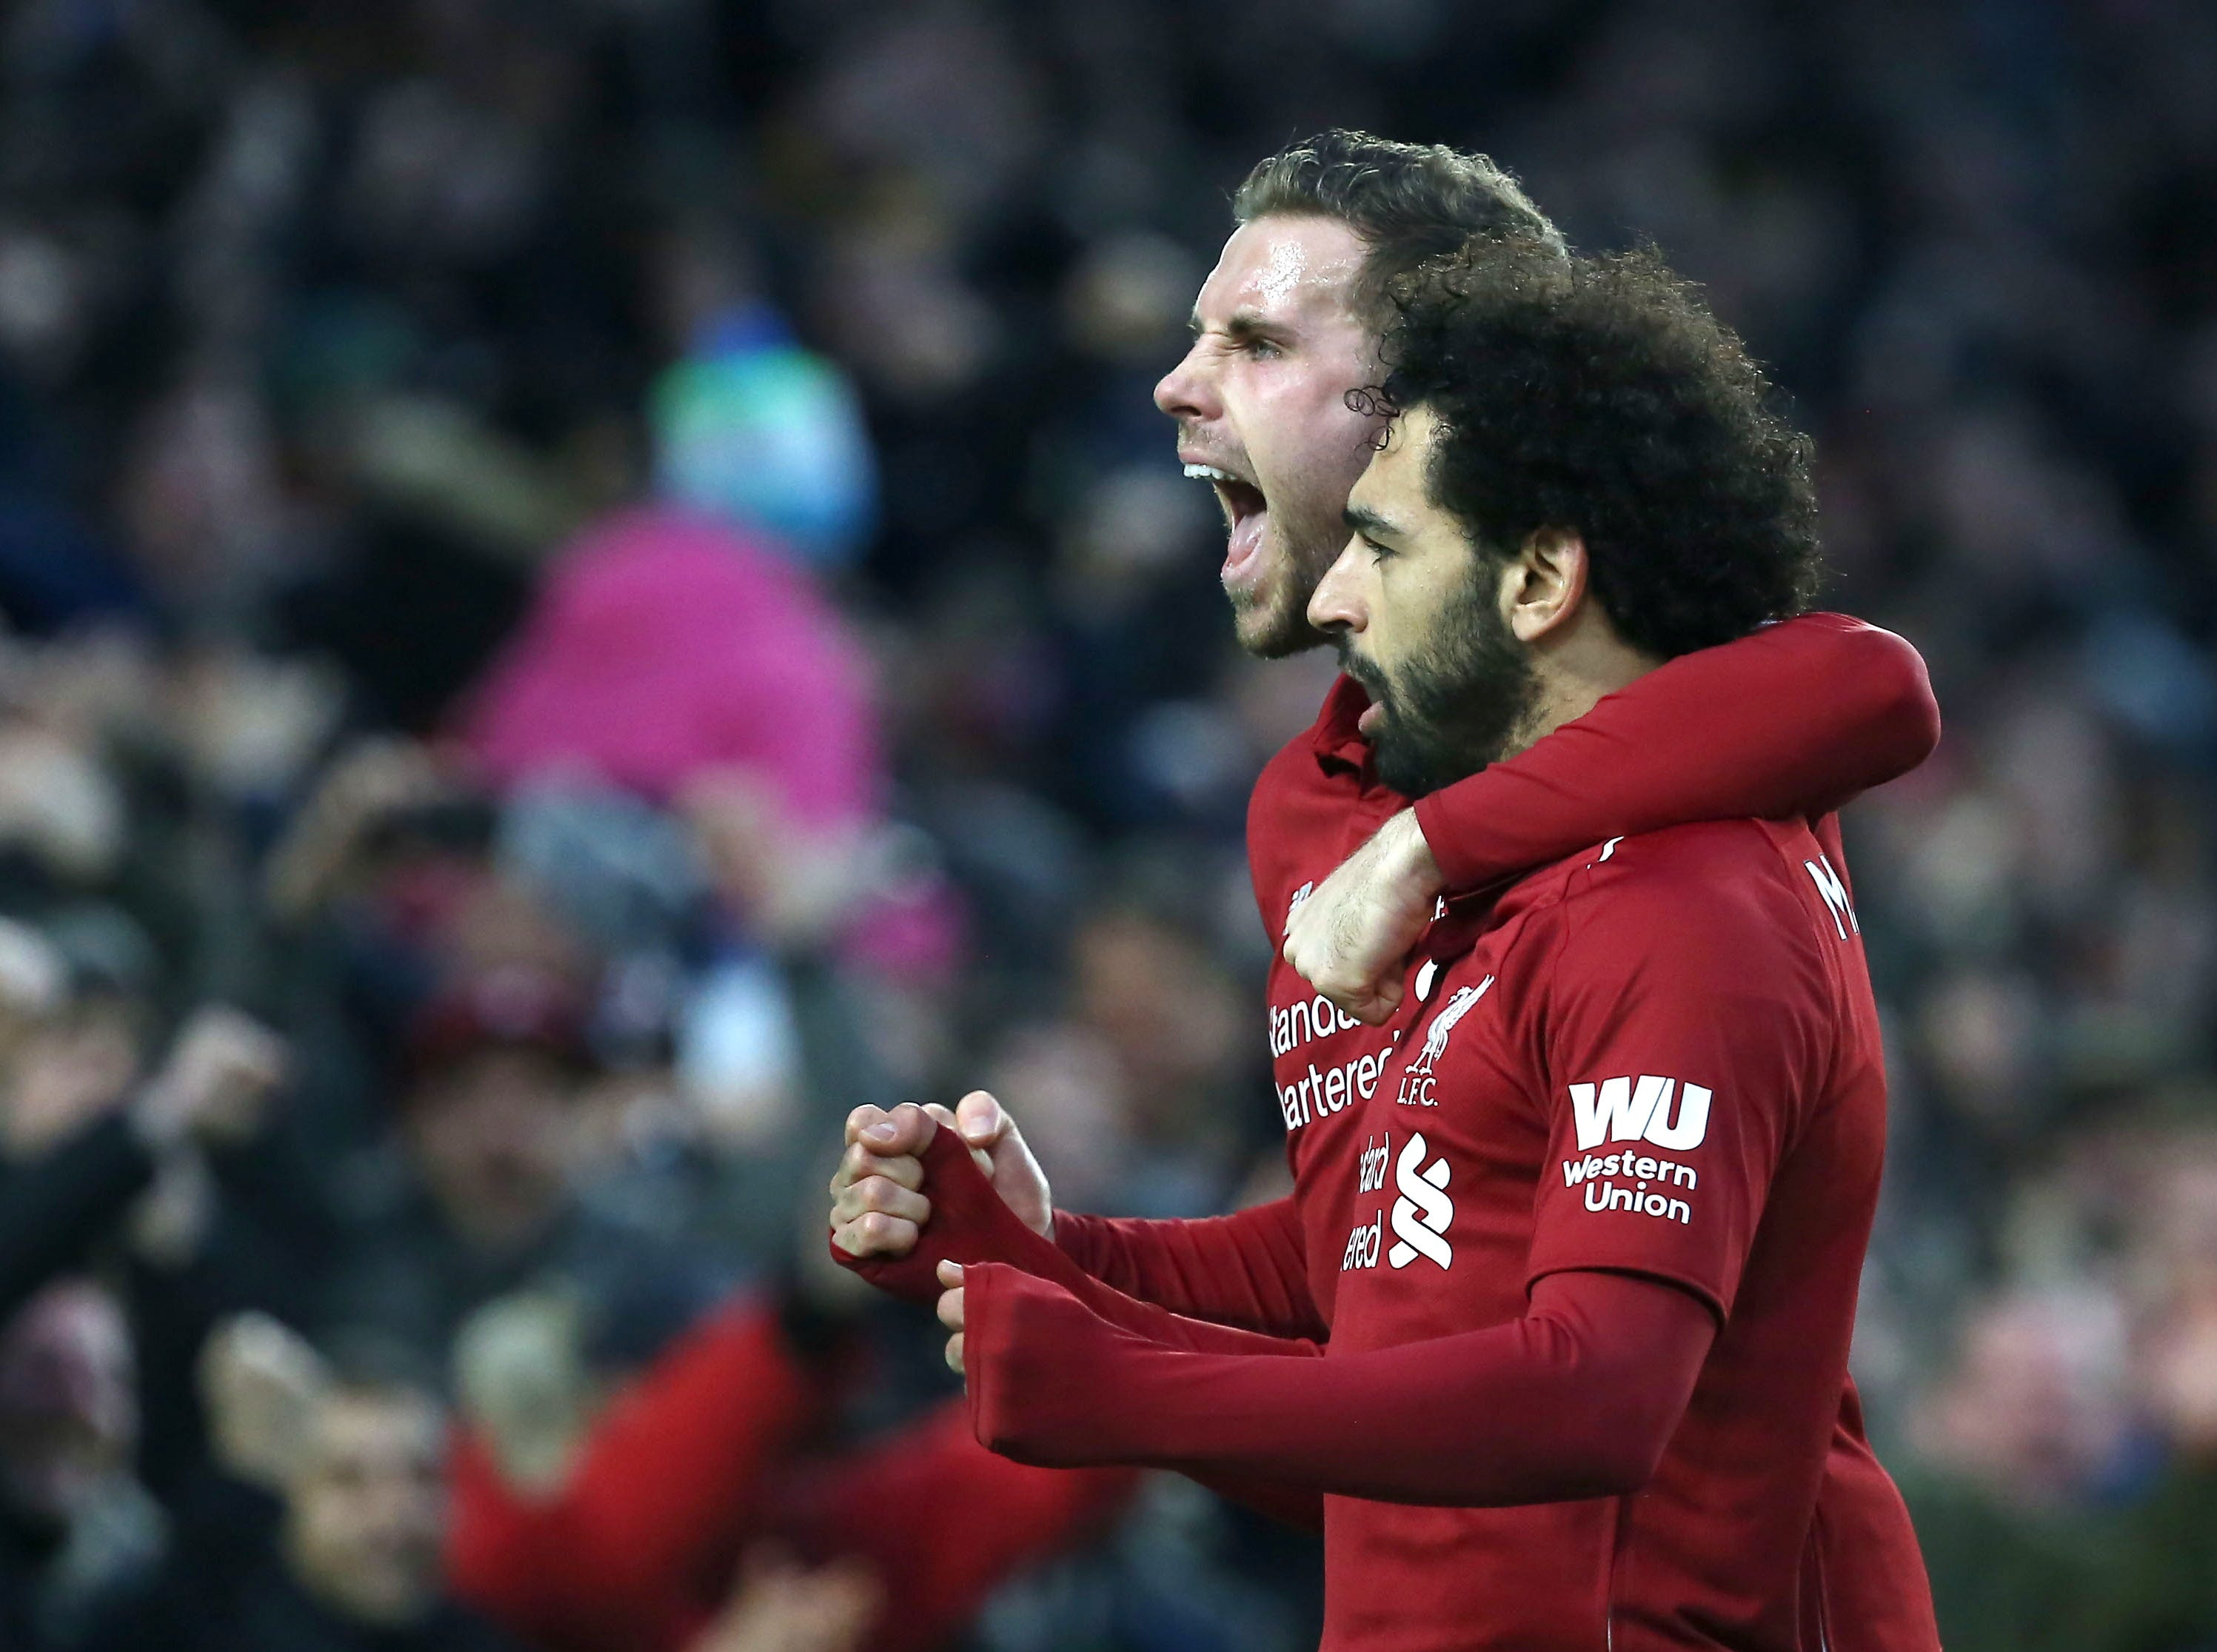 Liverpool's Mohamed Salah celebrates scoring the opening goal against Brighton.